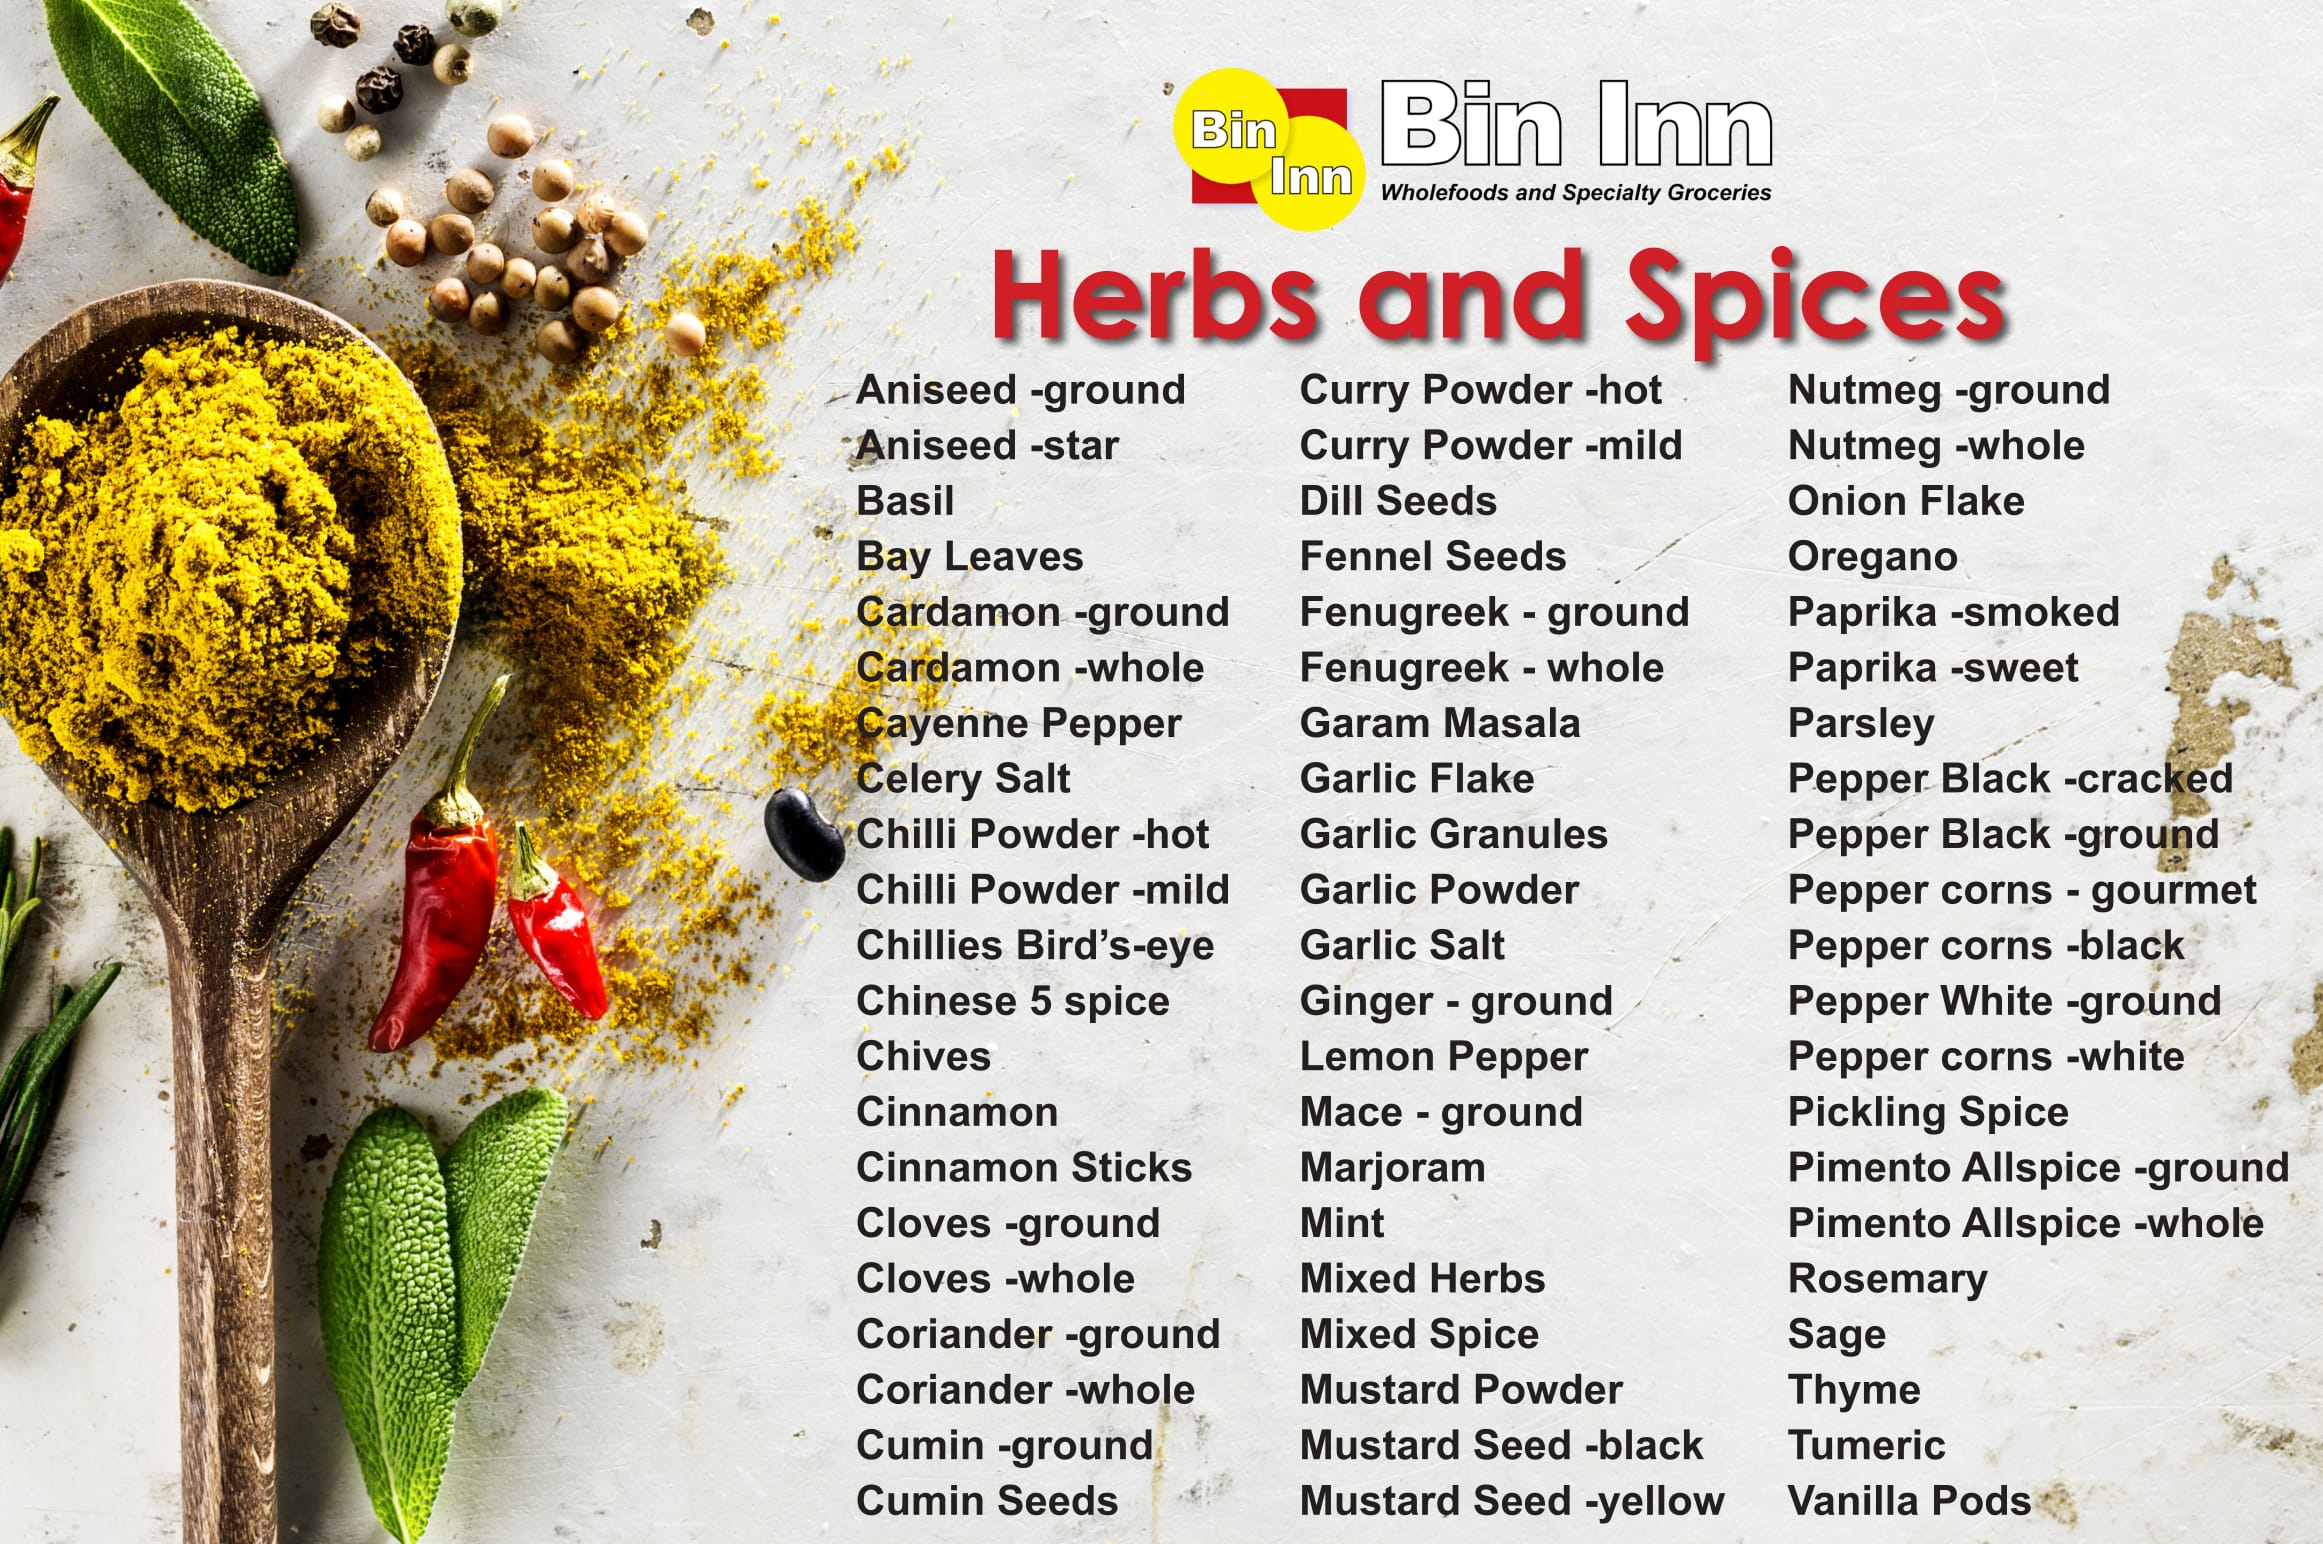 Herbs and Spices | Bin Inn | Wholefoods & Specialty Groceries